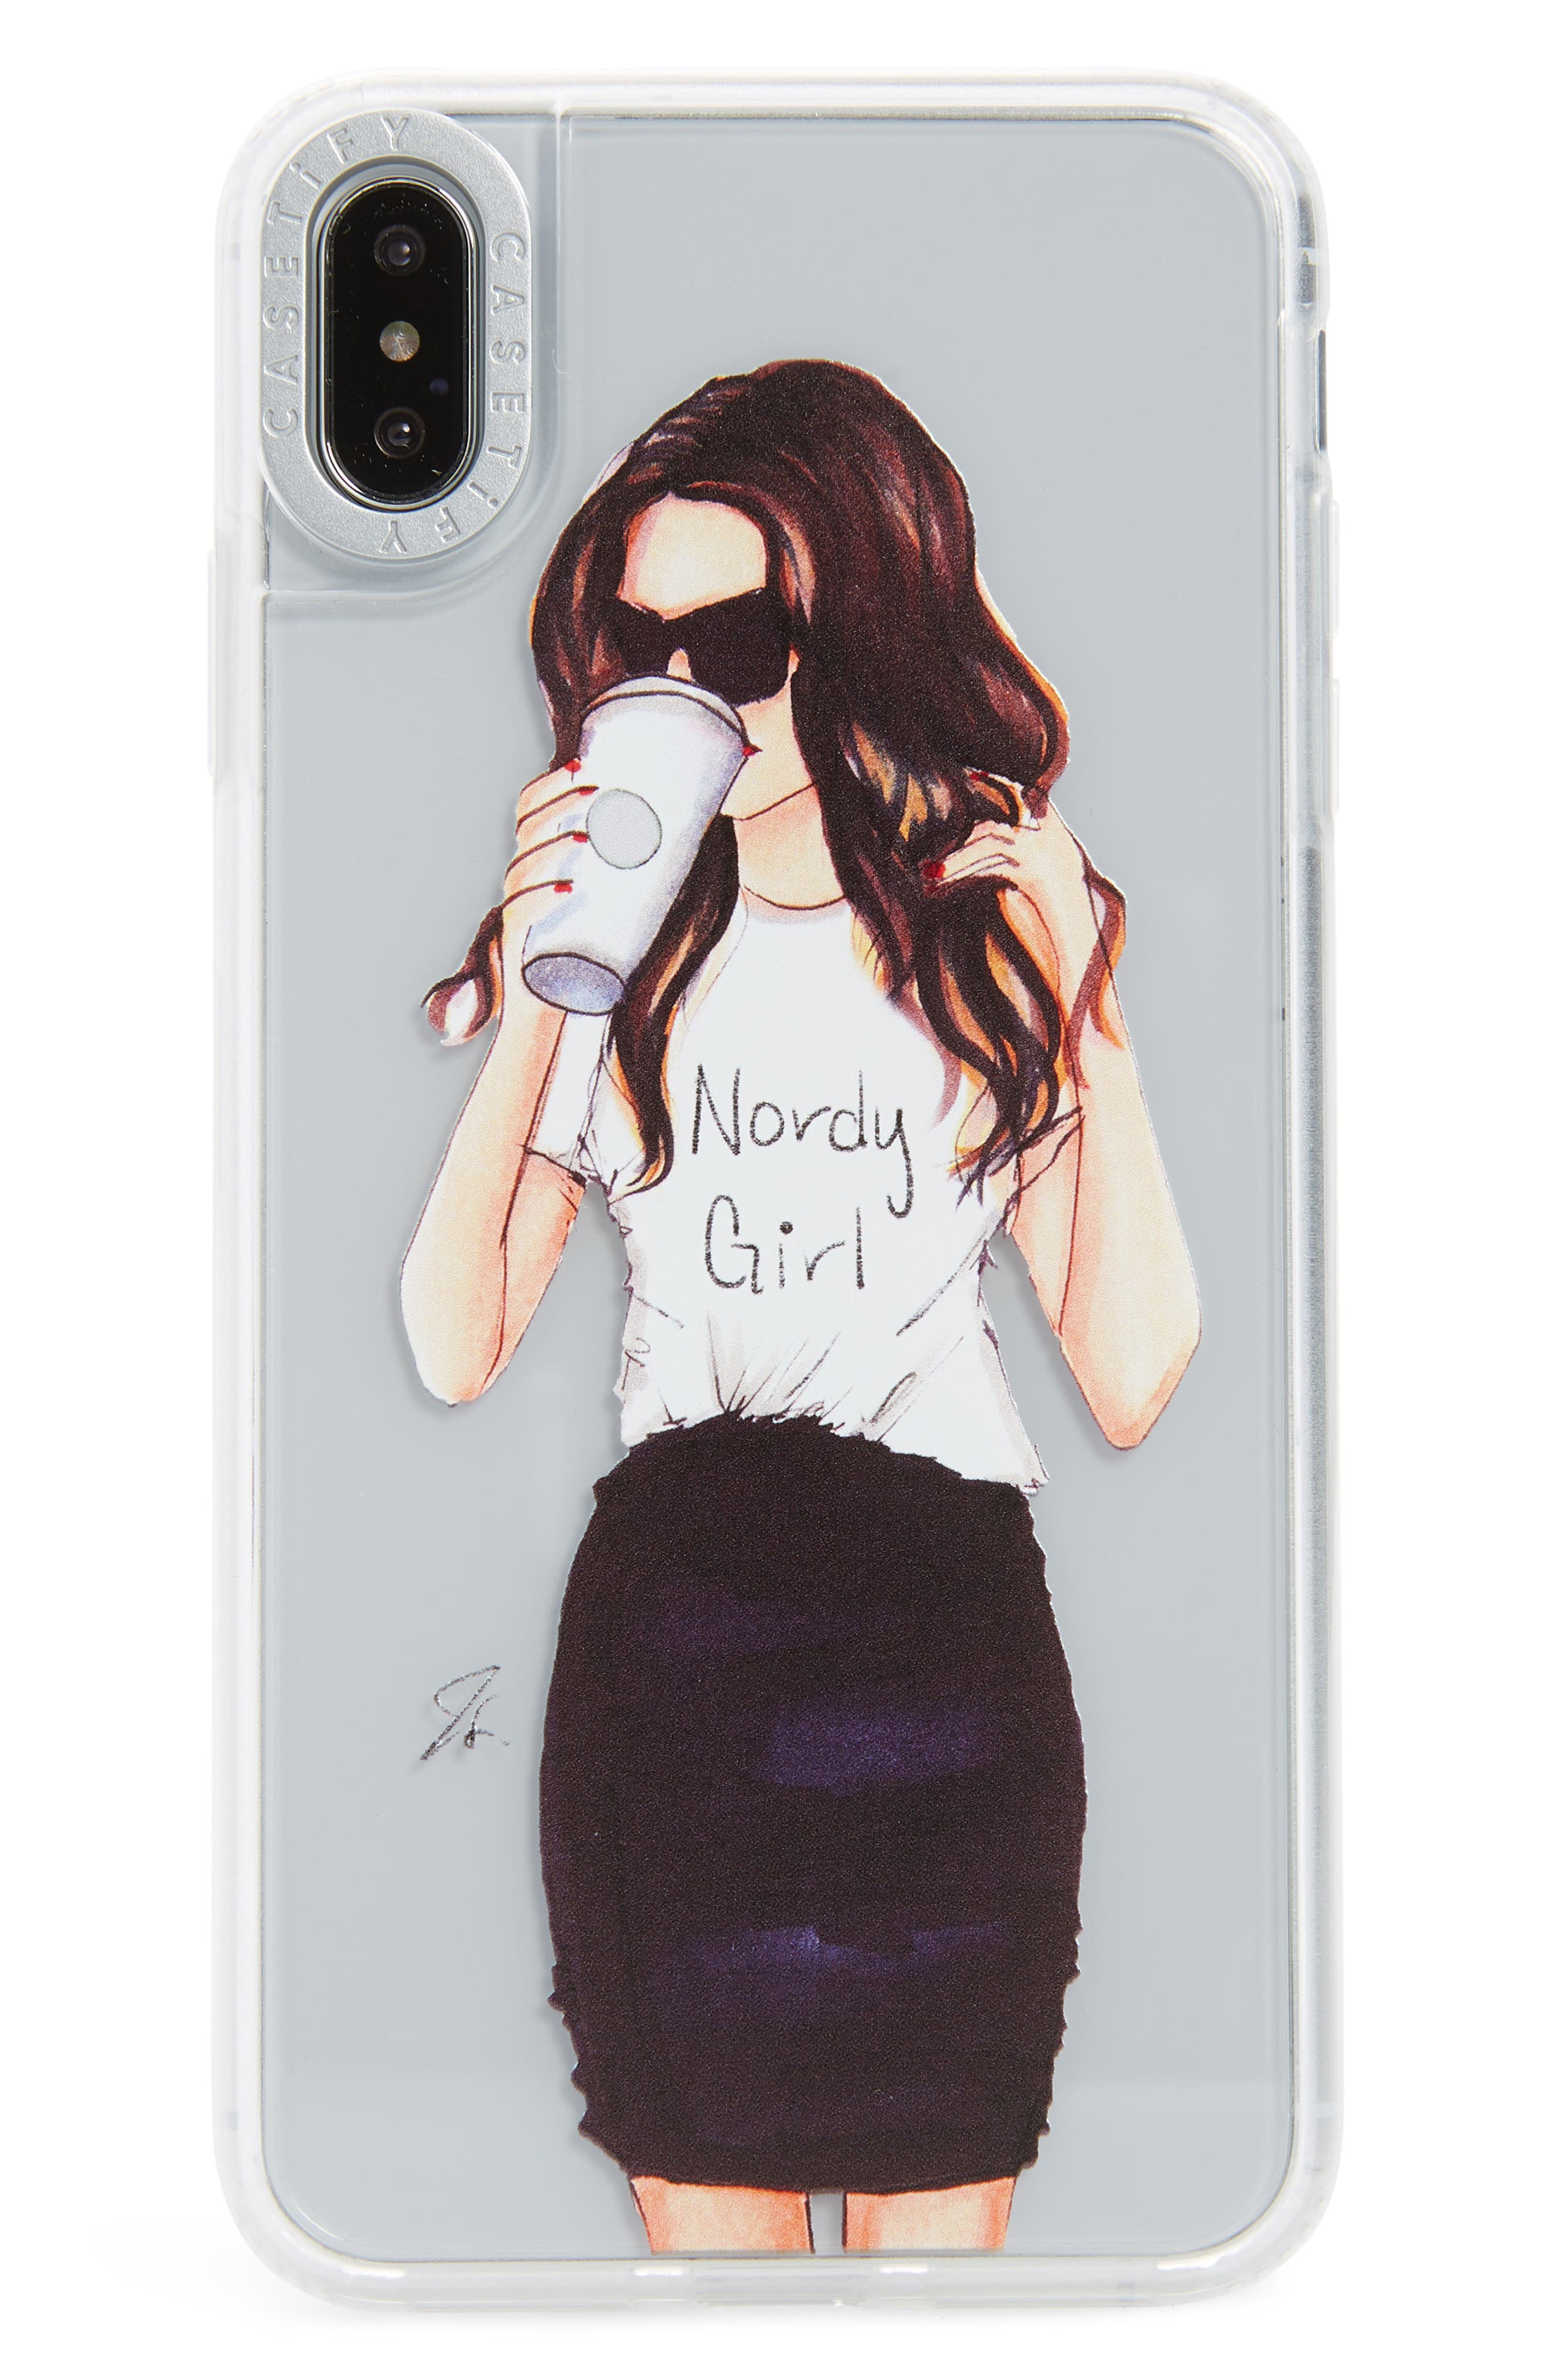 CASETIFY Nordy Girl Grip iPhone X/Xs, XR, X Max Case, Main, color, BRUNETTE